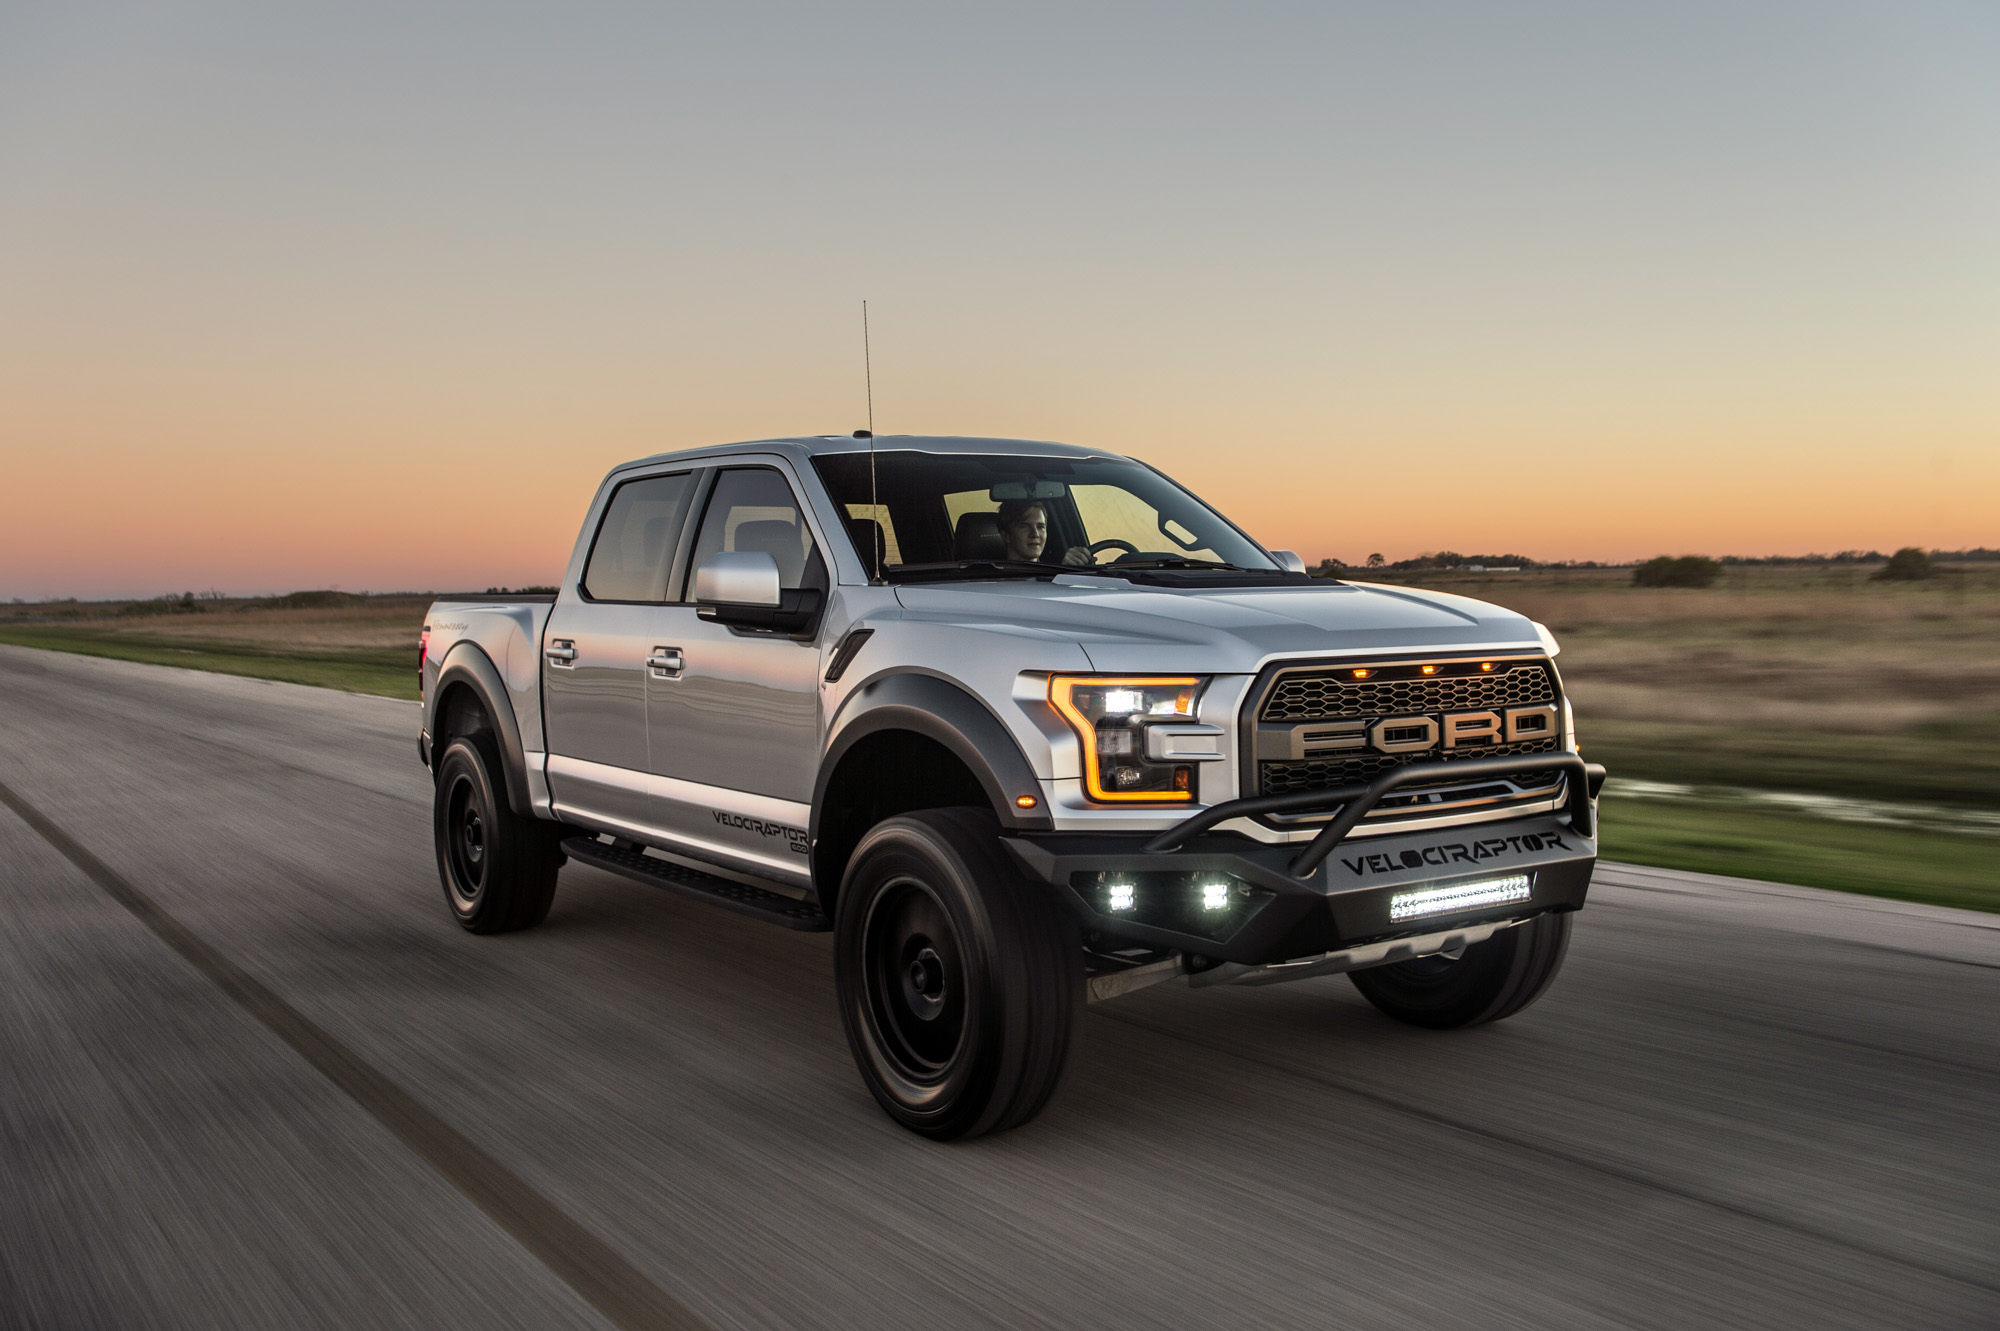 hennessey performance offers velociraptor upgrade rh totallandscapecare com